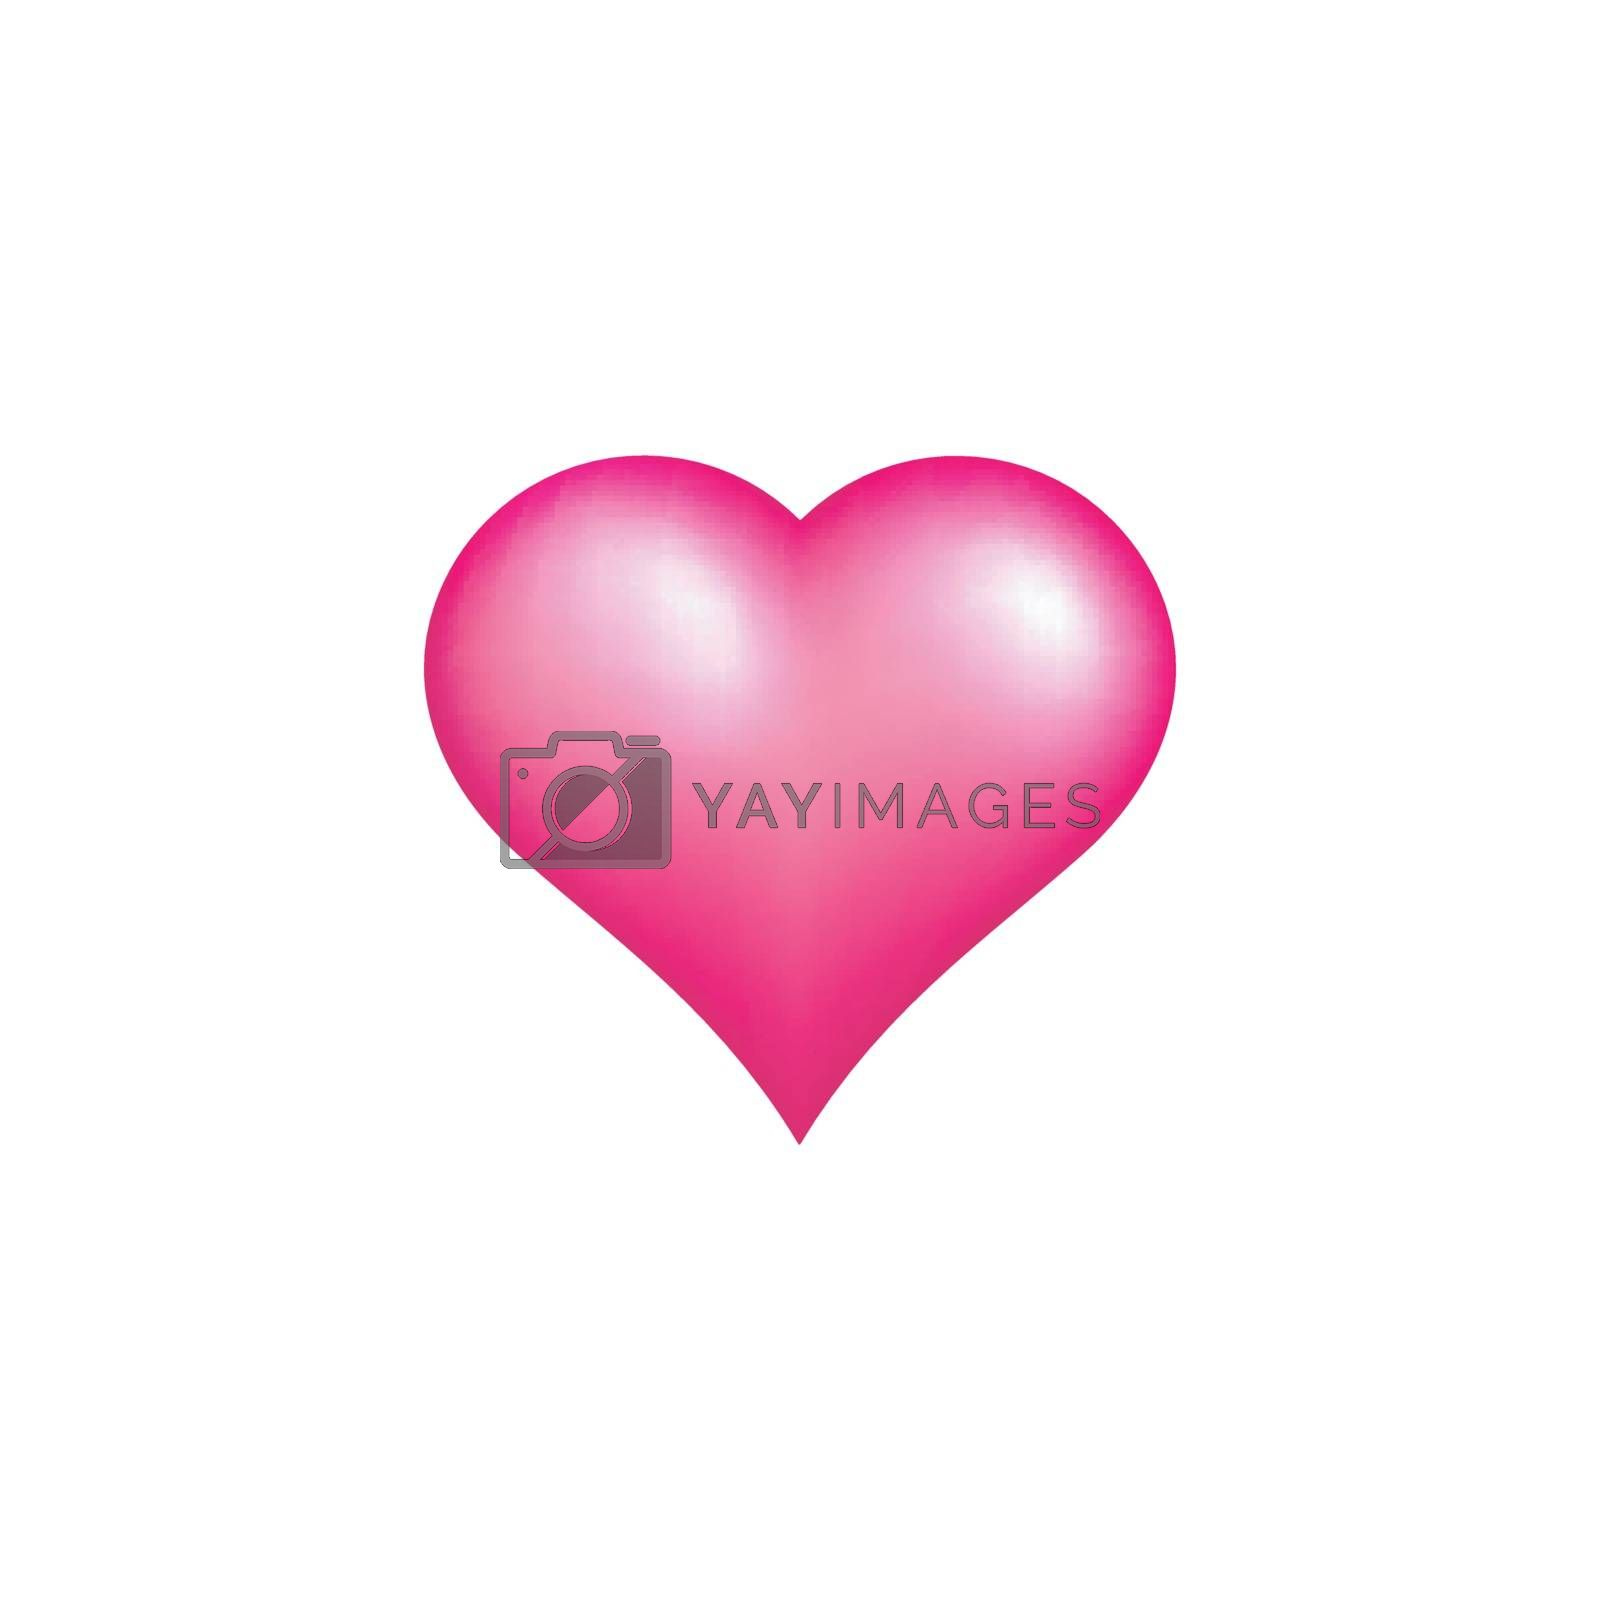 Shiny pink heart icon on white background.